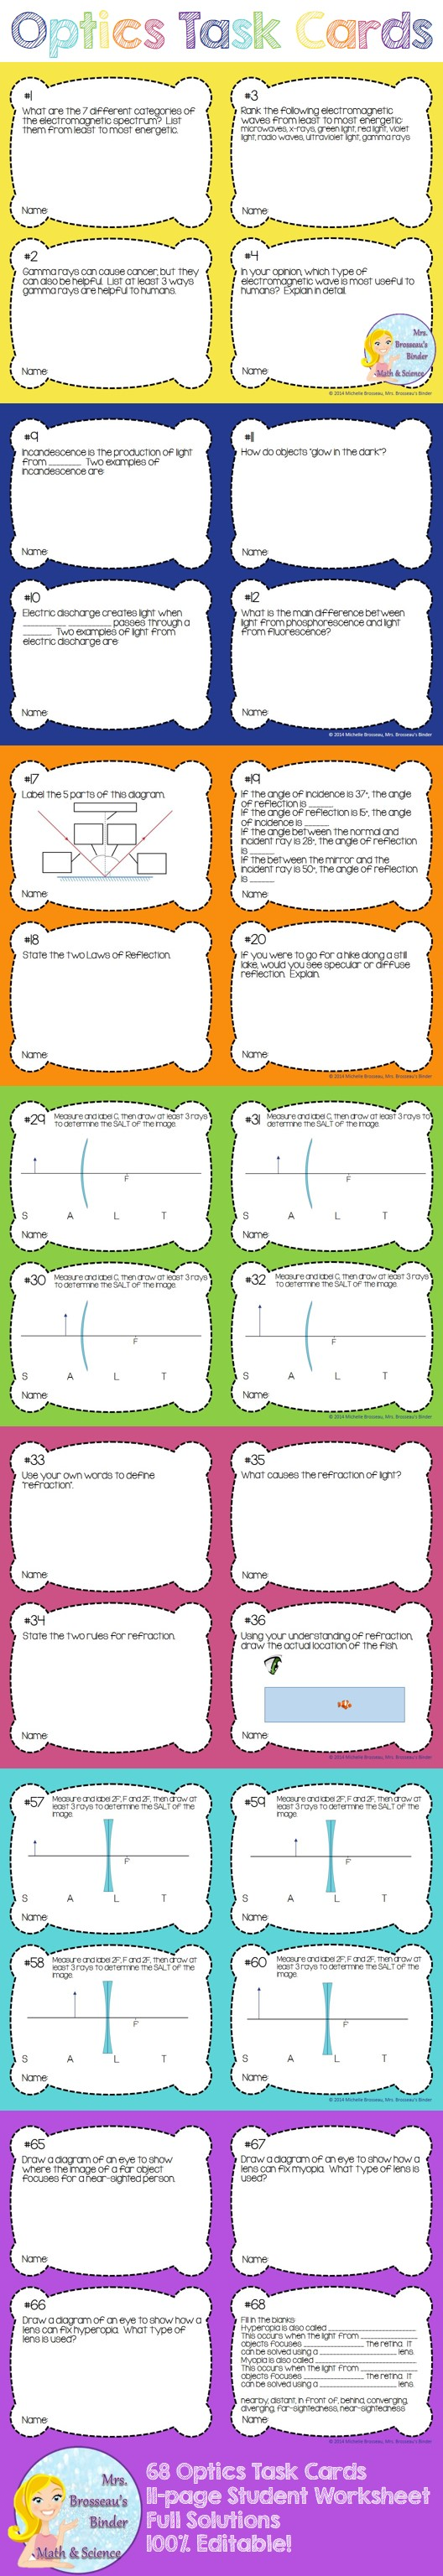 hight resolution of Optics Task Cards - 68 Cards with student worksheets and full solutions!  Topics: Electromagnetic Spectrum